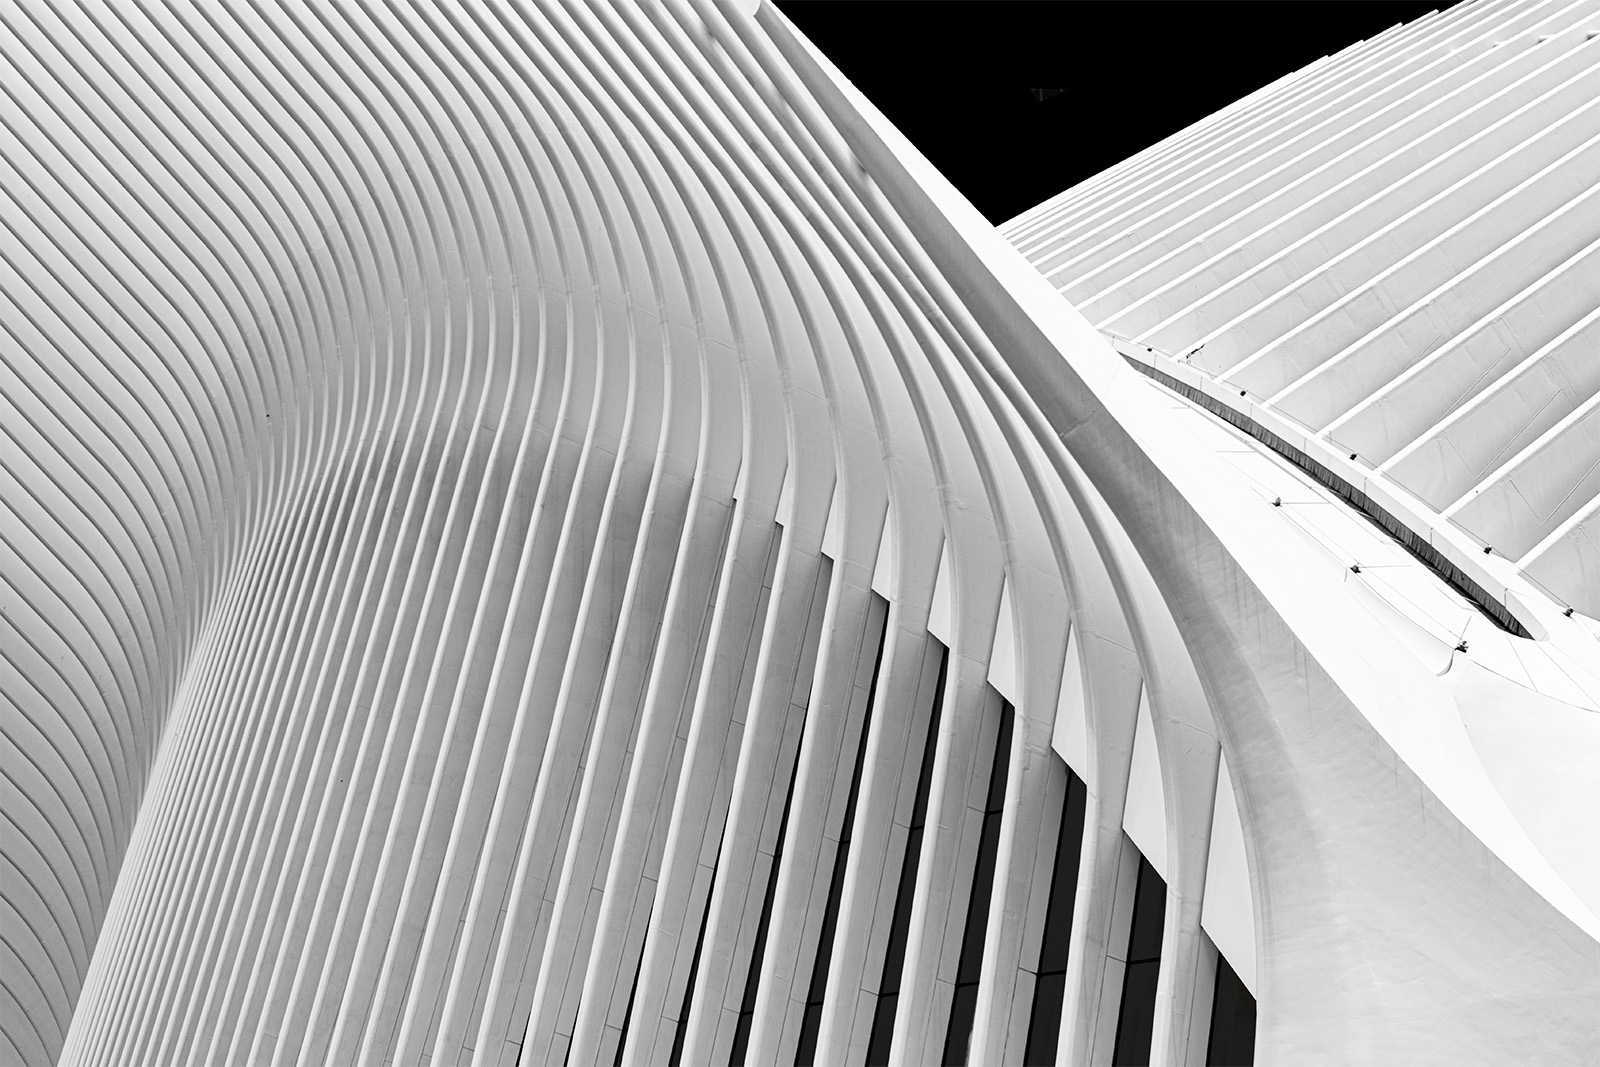 Symphony of Lines by Larry Dunn